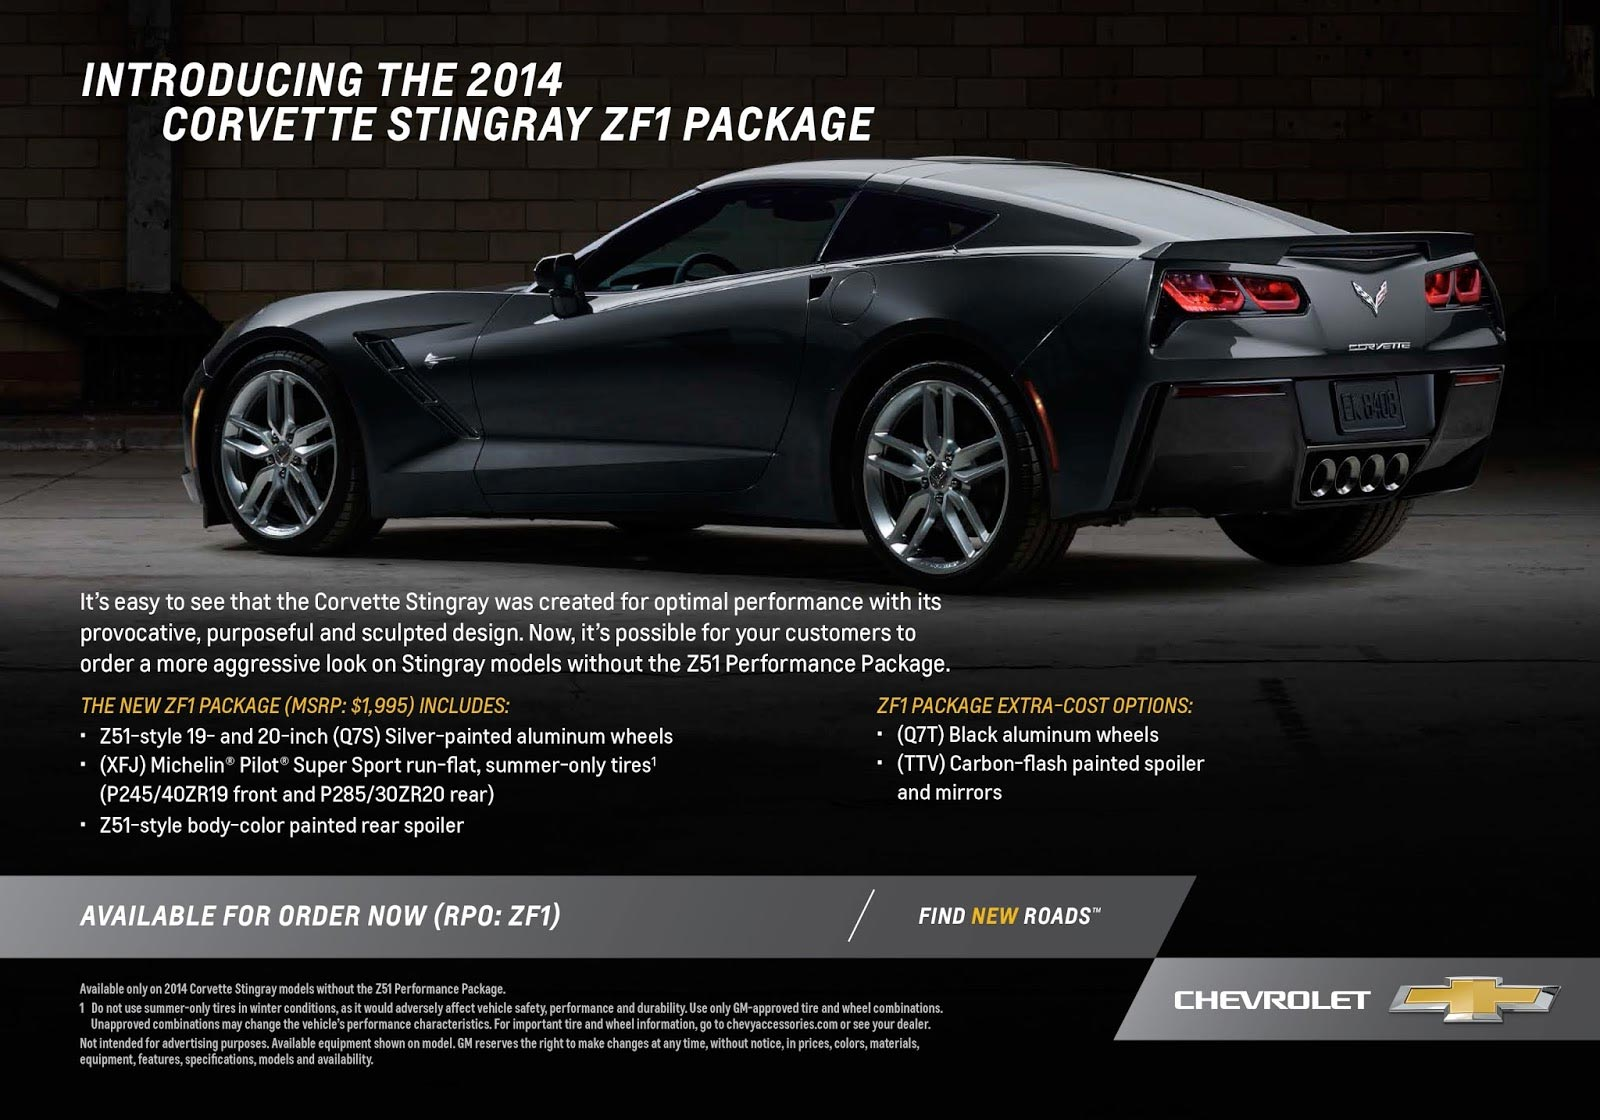 Get the ZF1 Appearance Package on a 2014 Corvette Stingray